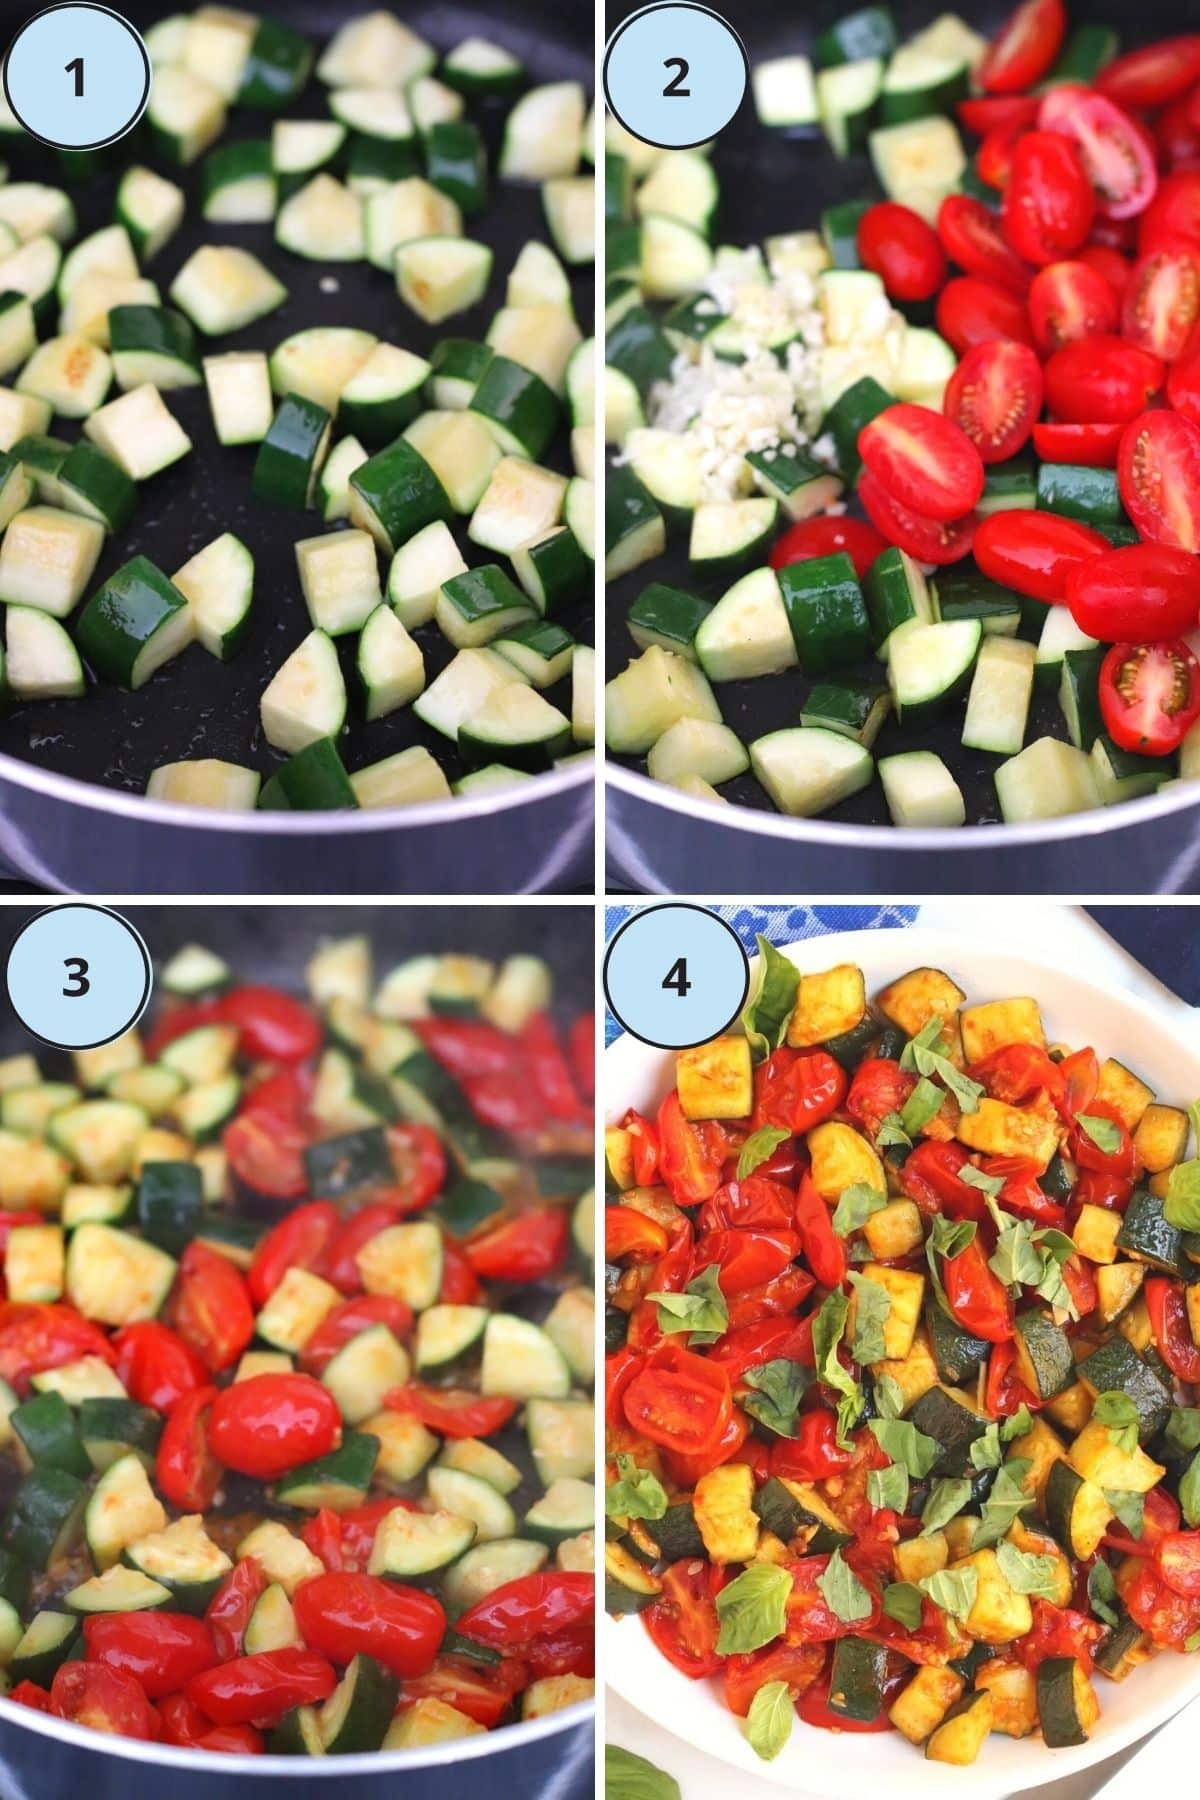 Collage of 4 images showing how to prepare this recipe